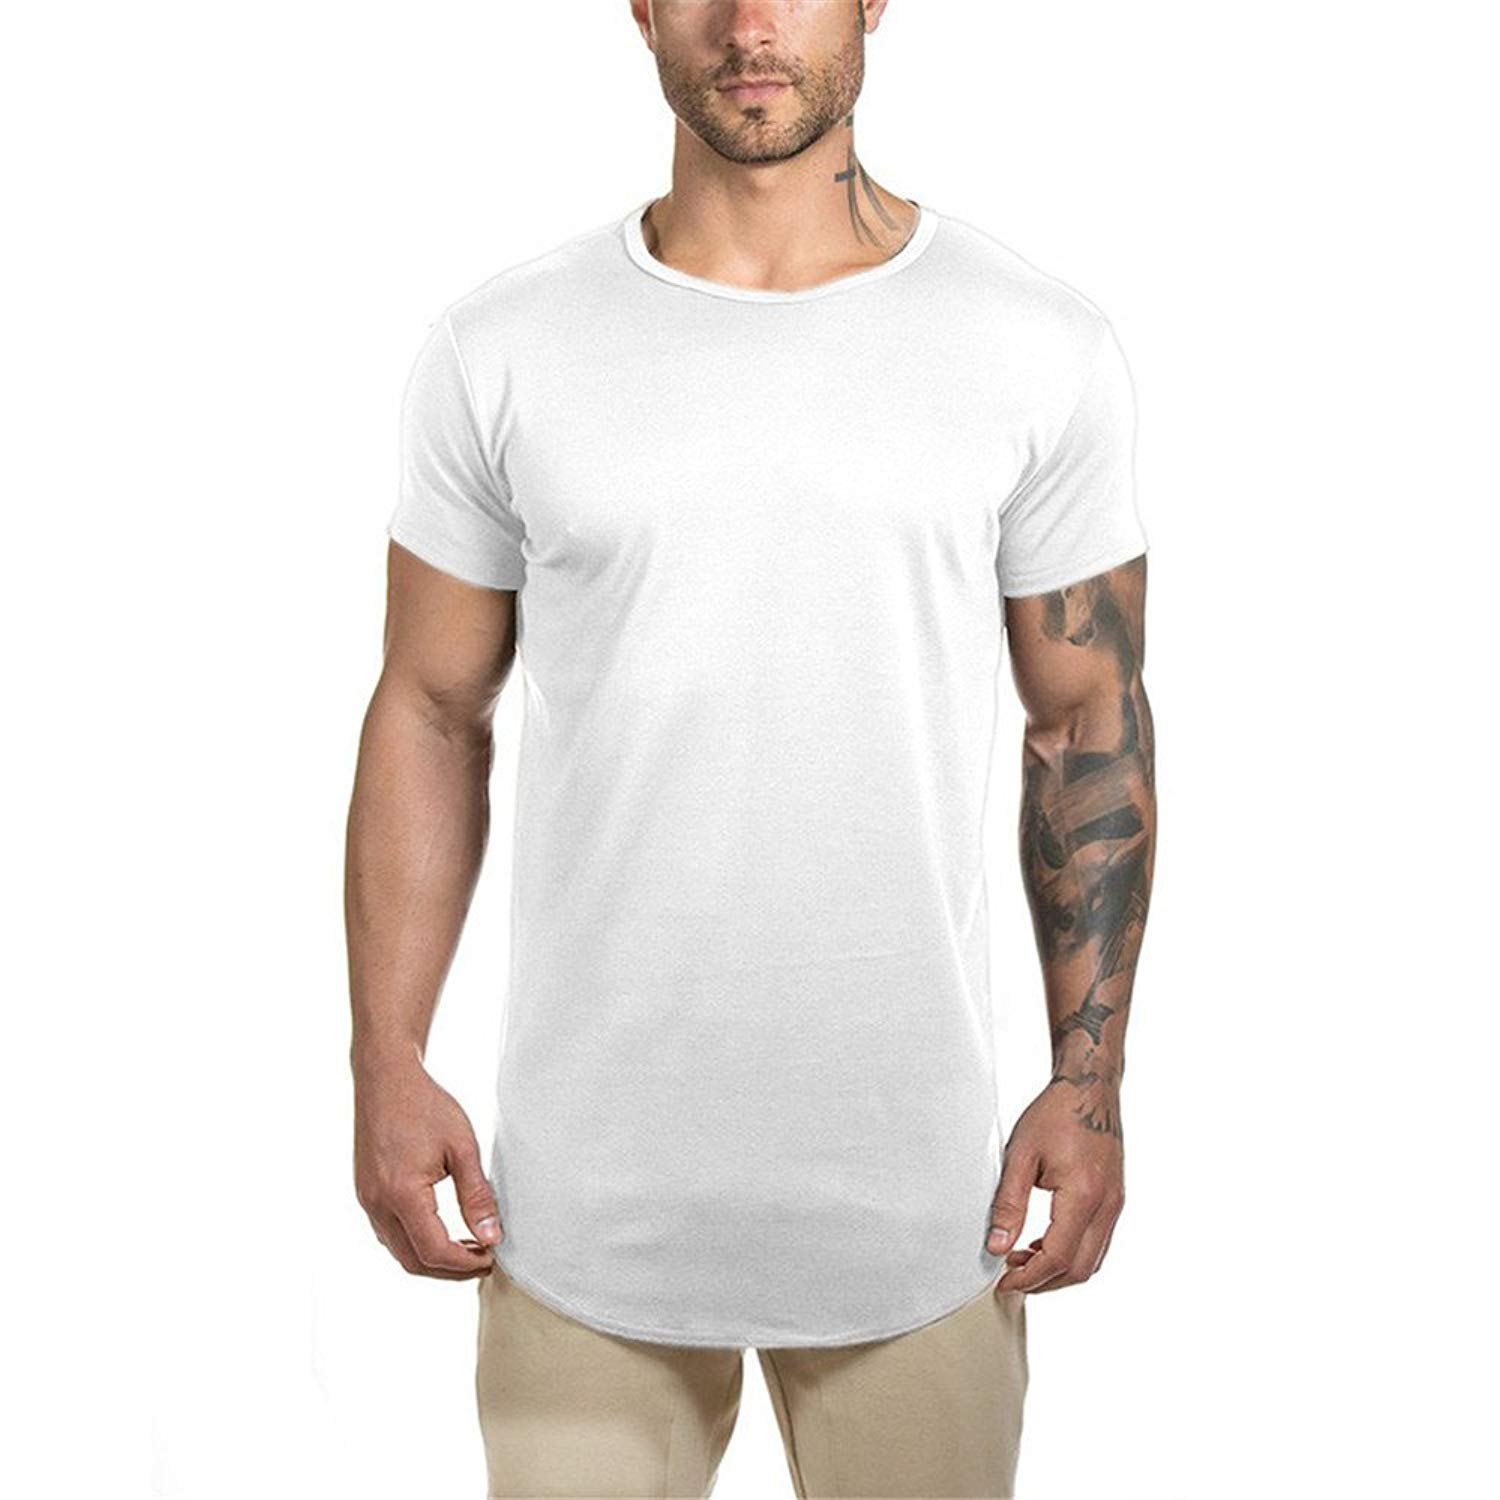 33ce9d2b Get Quotations · Athlemon Mens Longline Gym Muscle Bodybuilding Tshirts  Hipster Reflective Line Scallop Crewneck Tees Shirts Tops